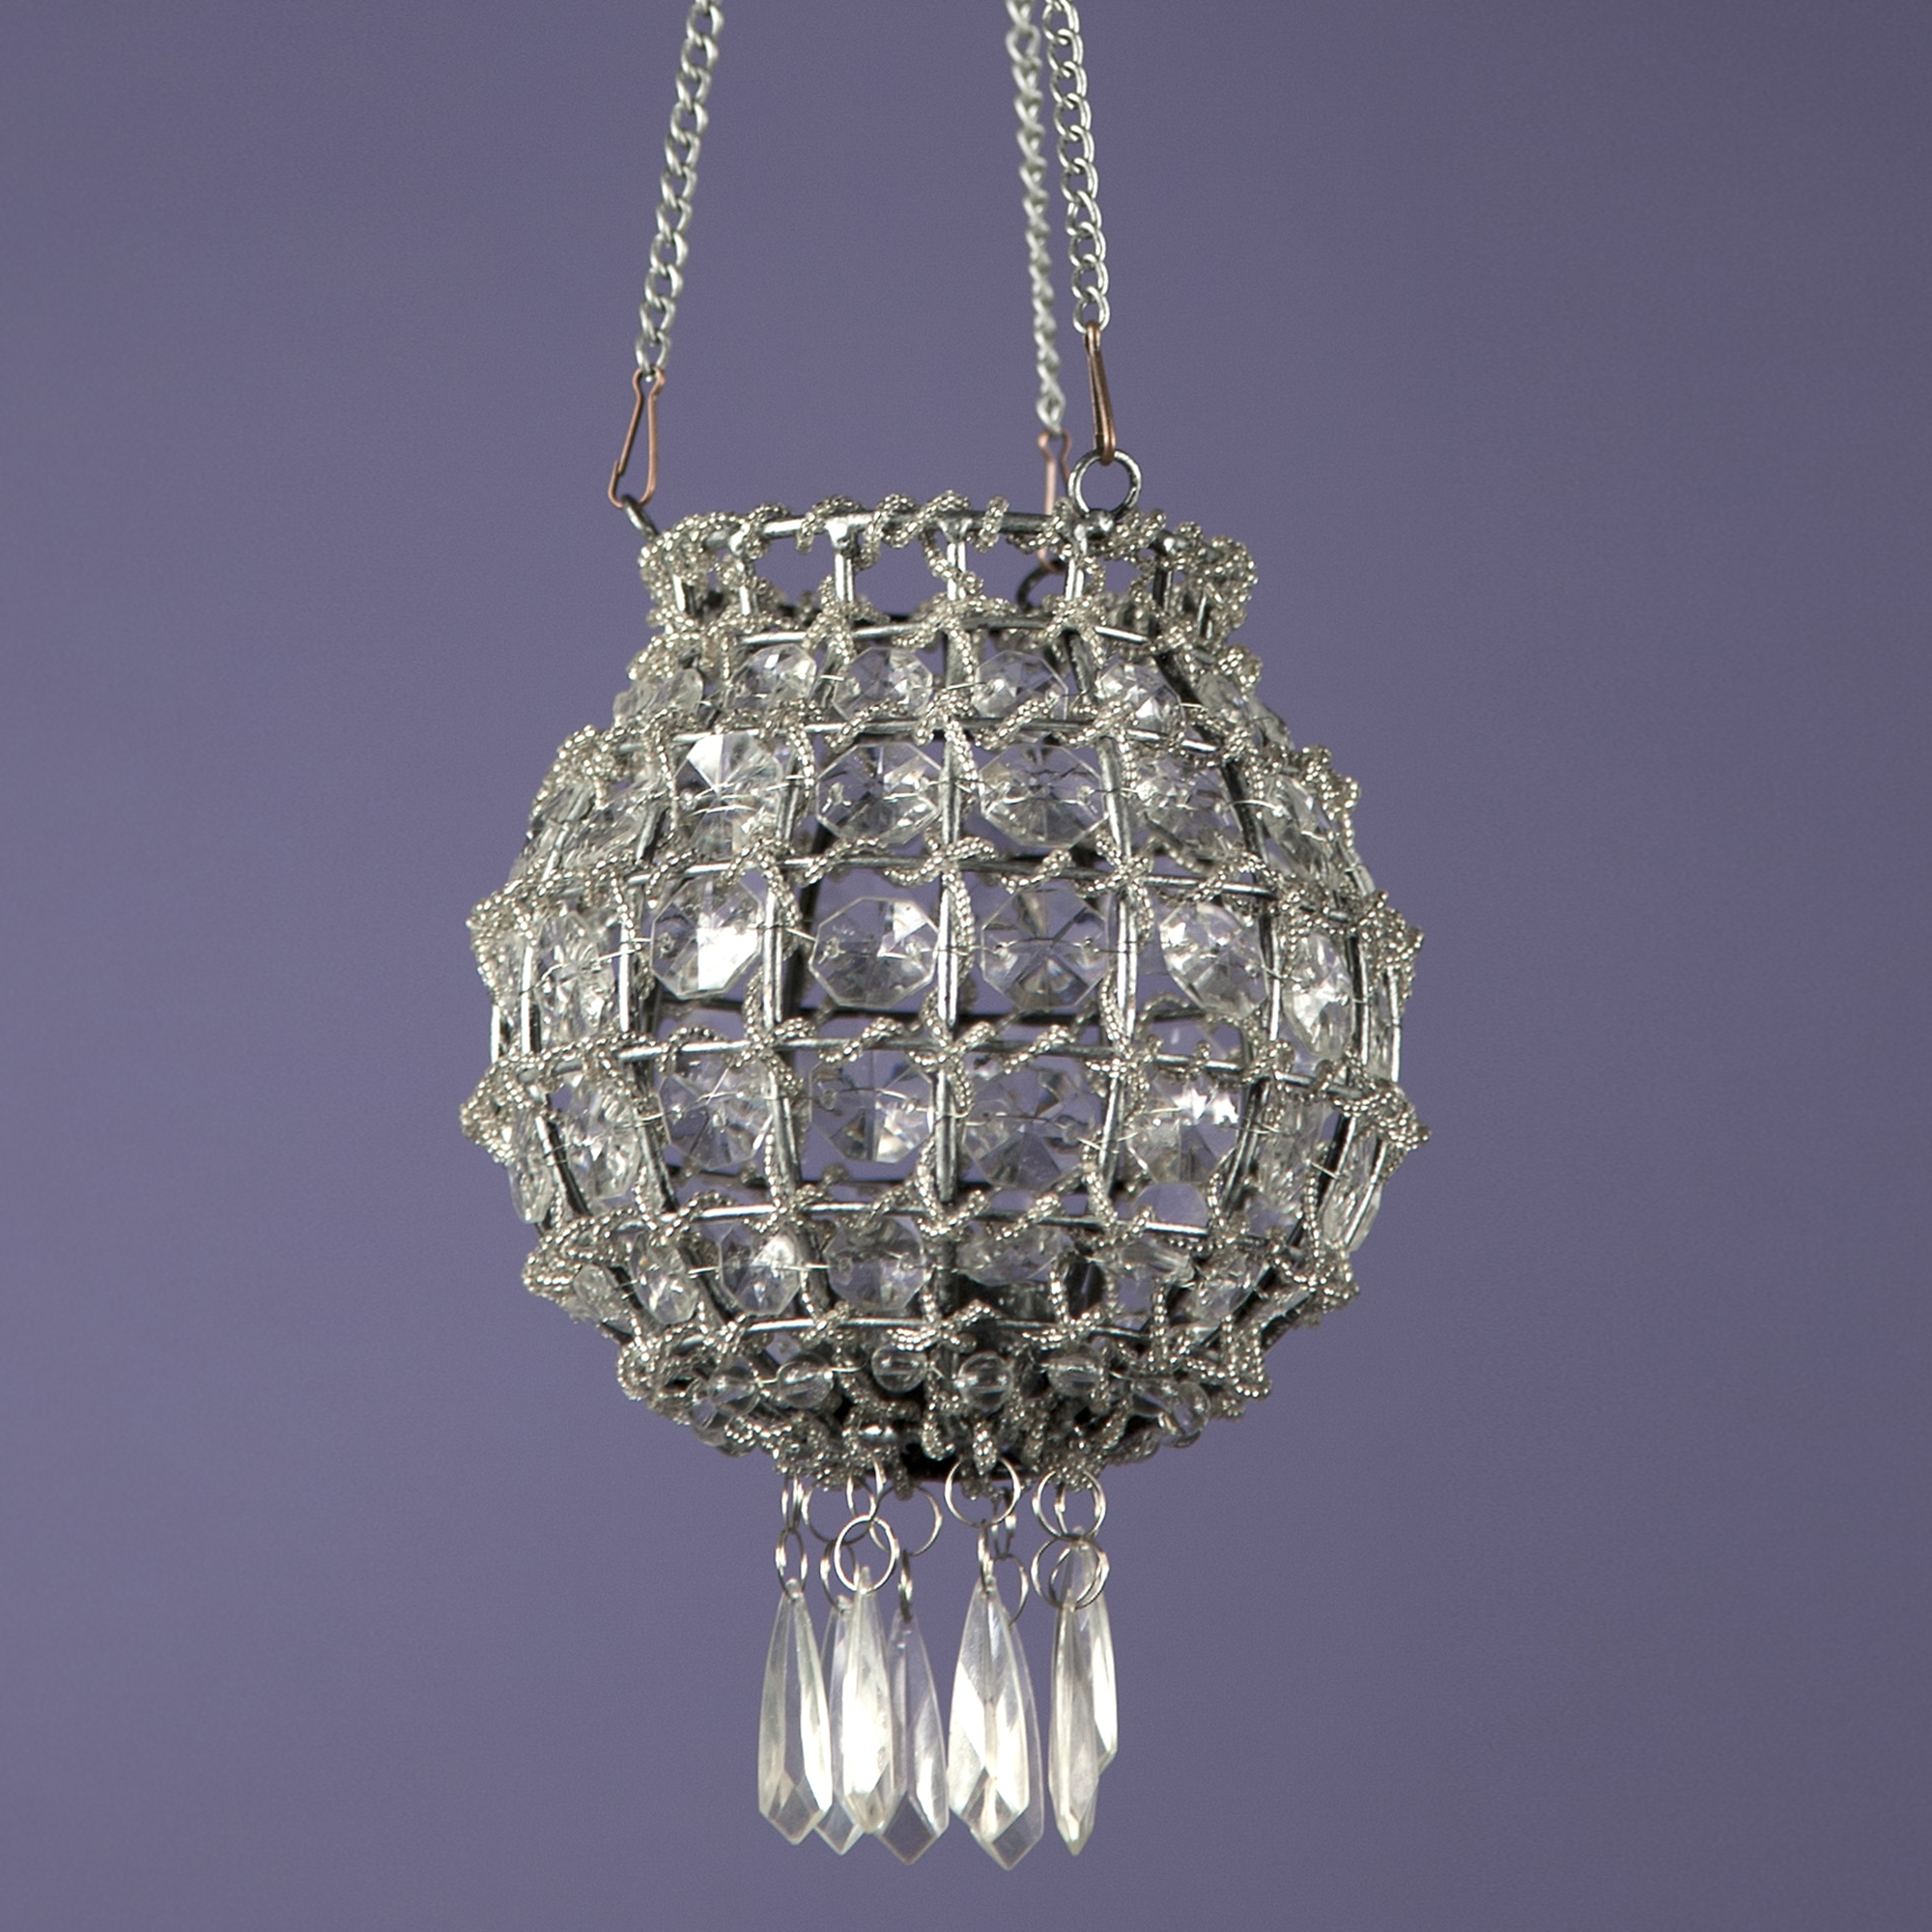 Jewelled Tealight Holder - Antique Silver